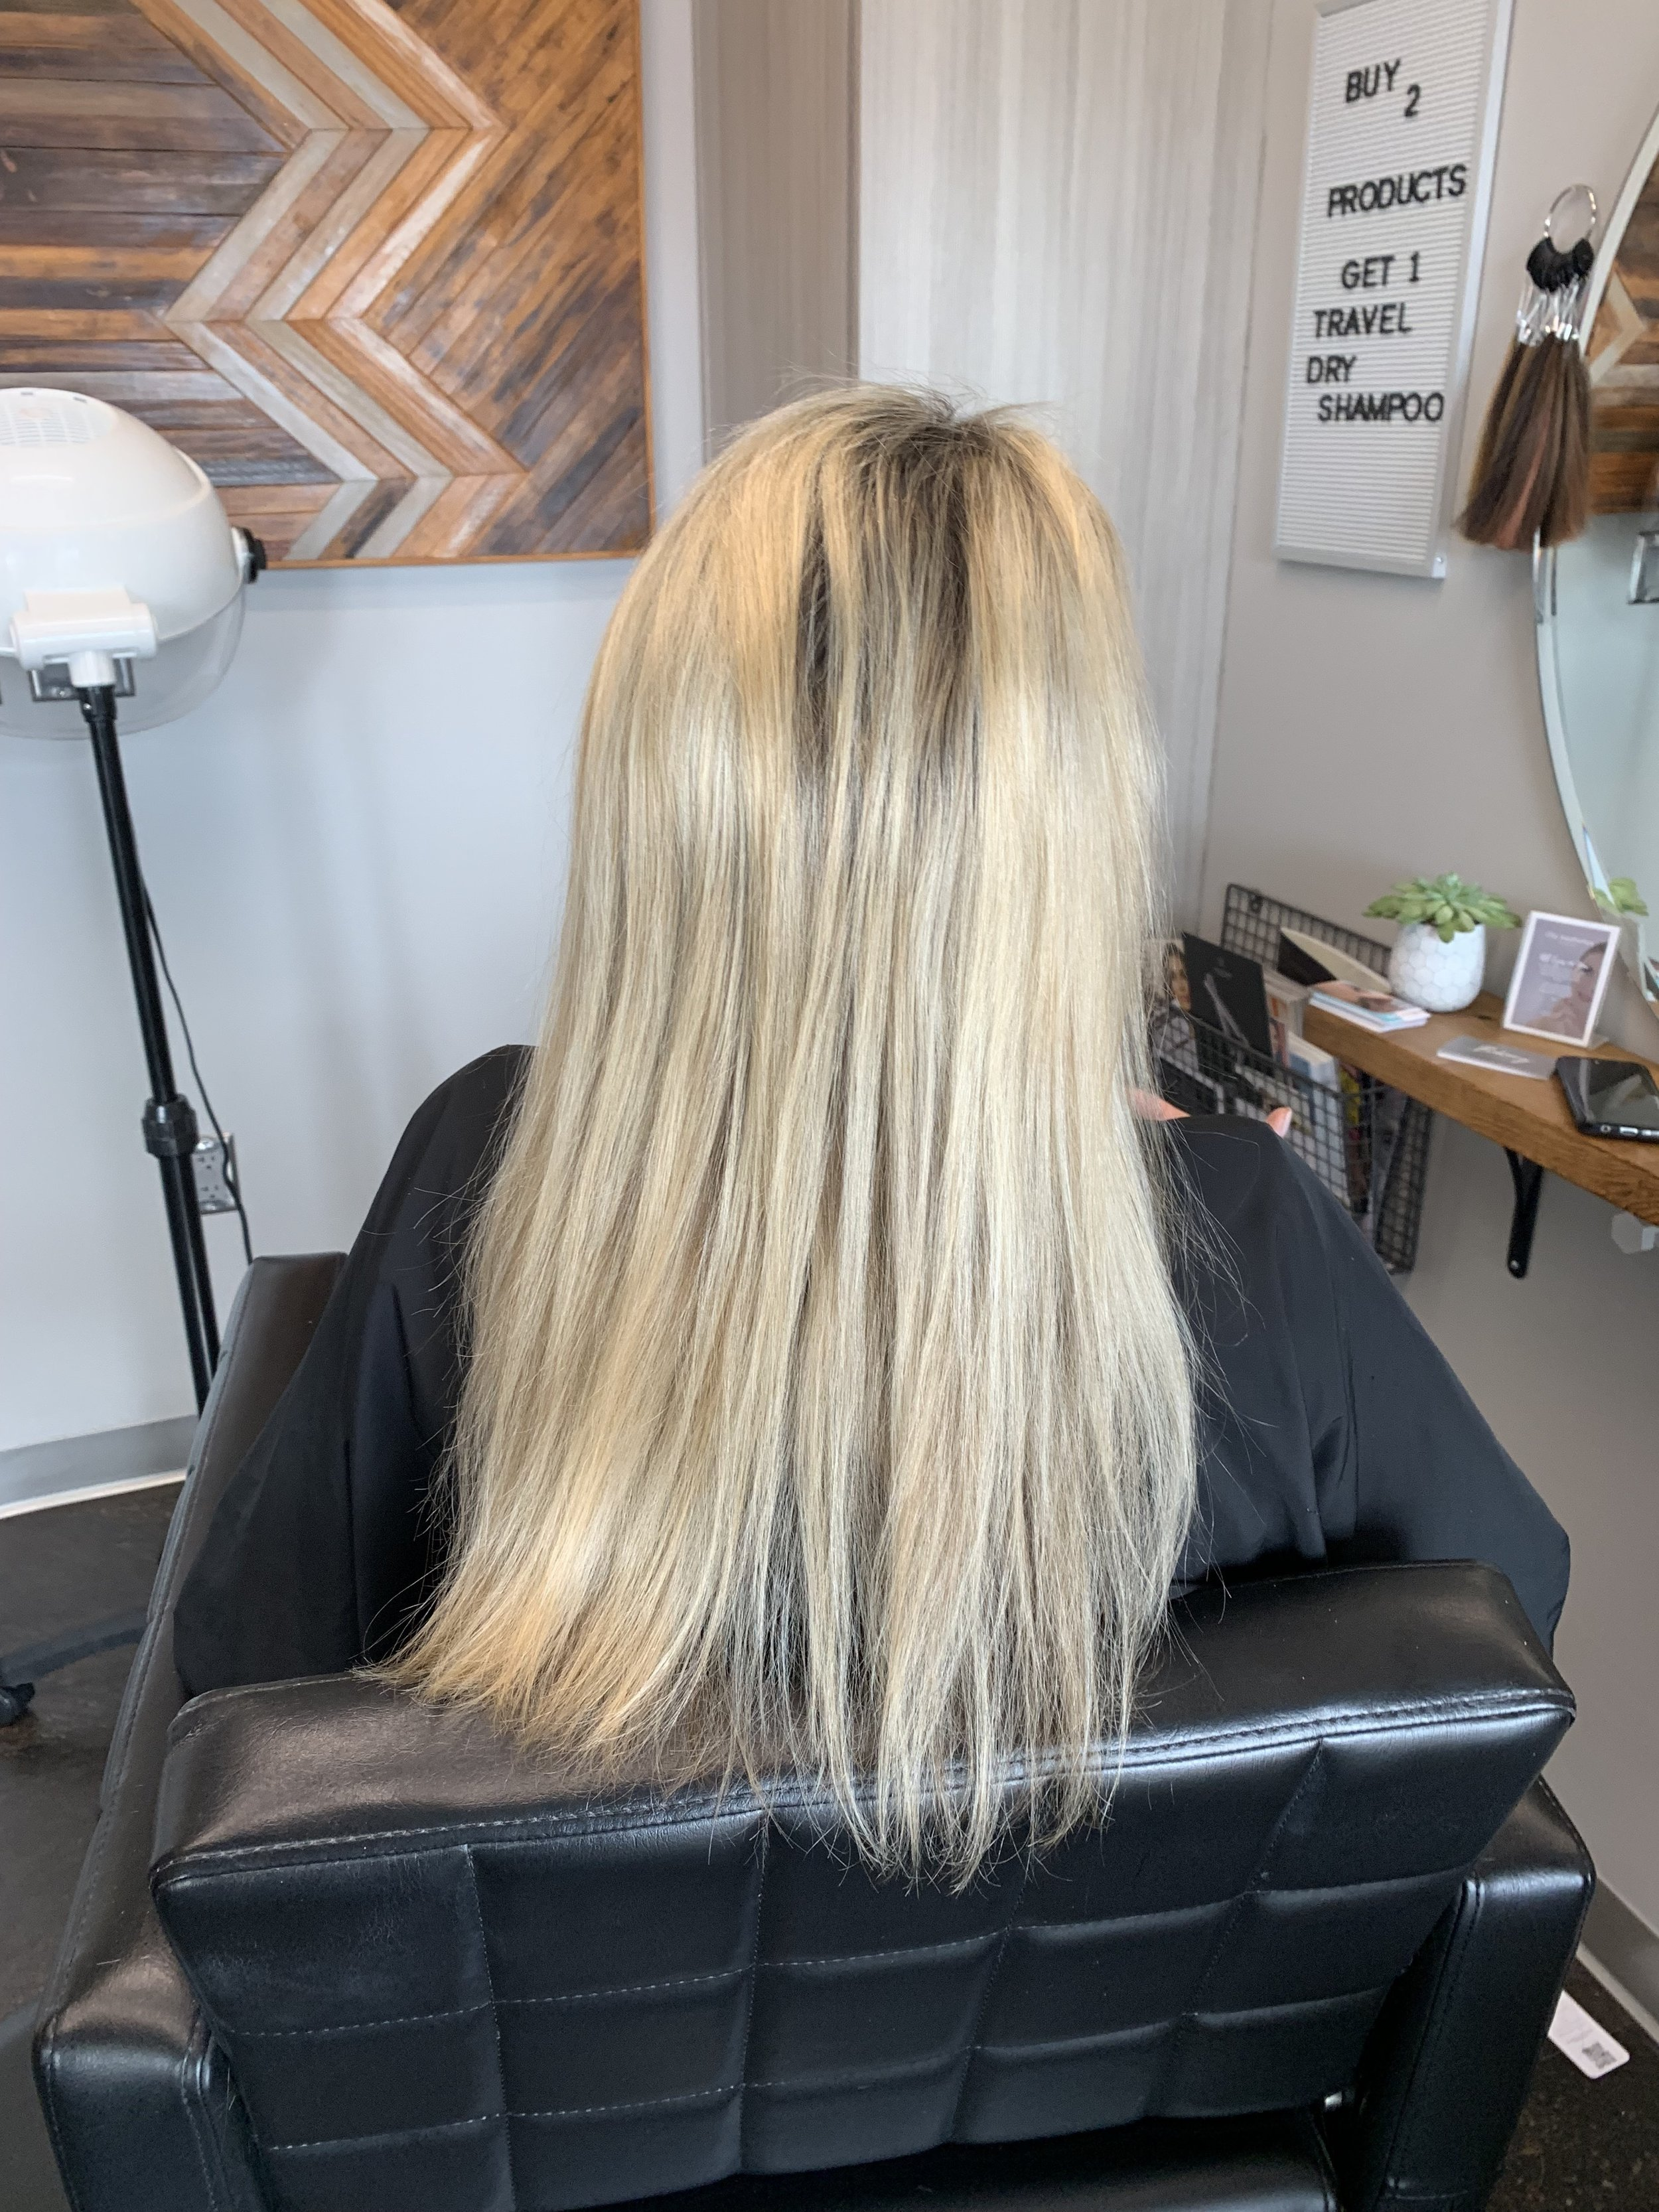 Beaded row hair extensions bohemy salon lake mary florida new.jpg